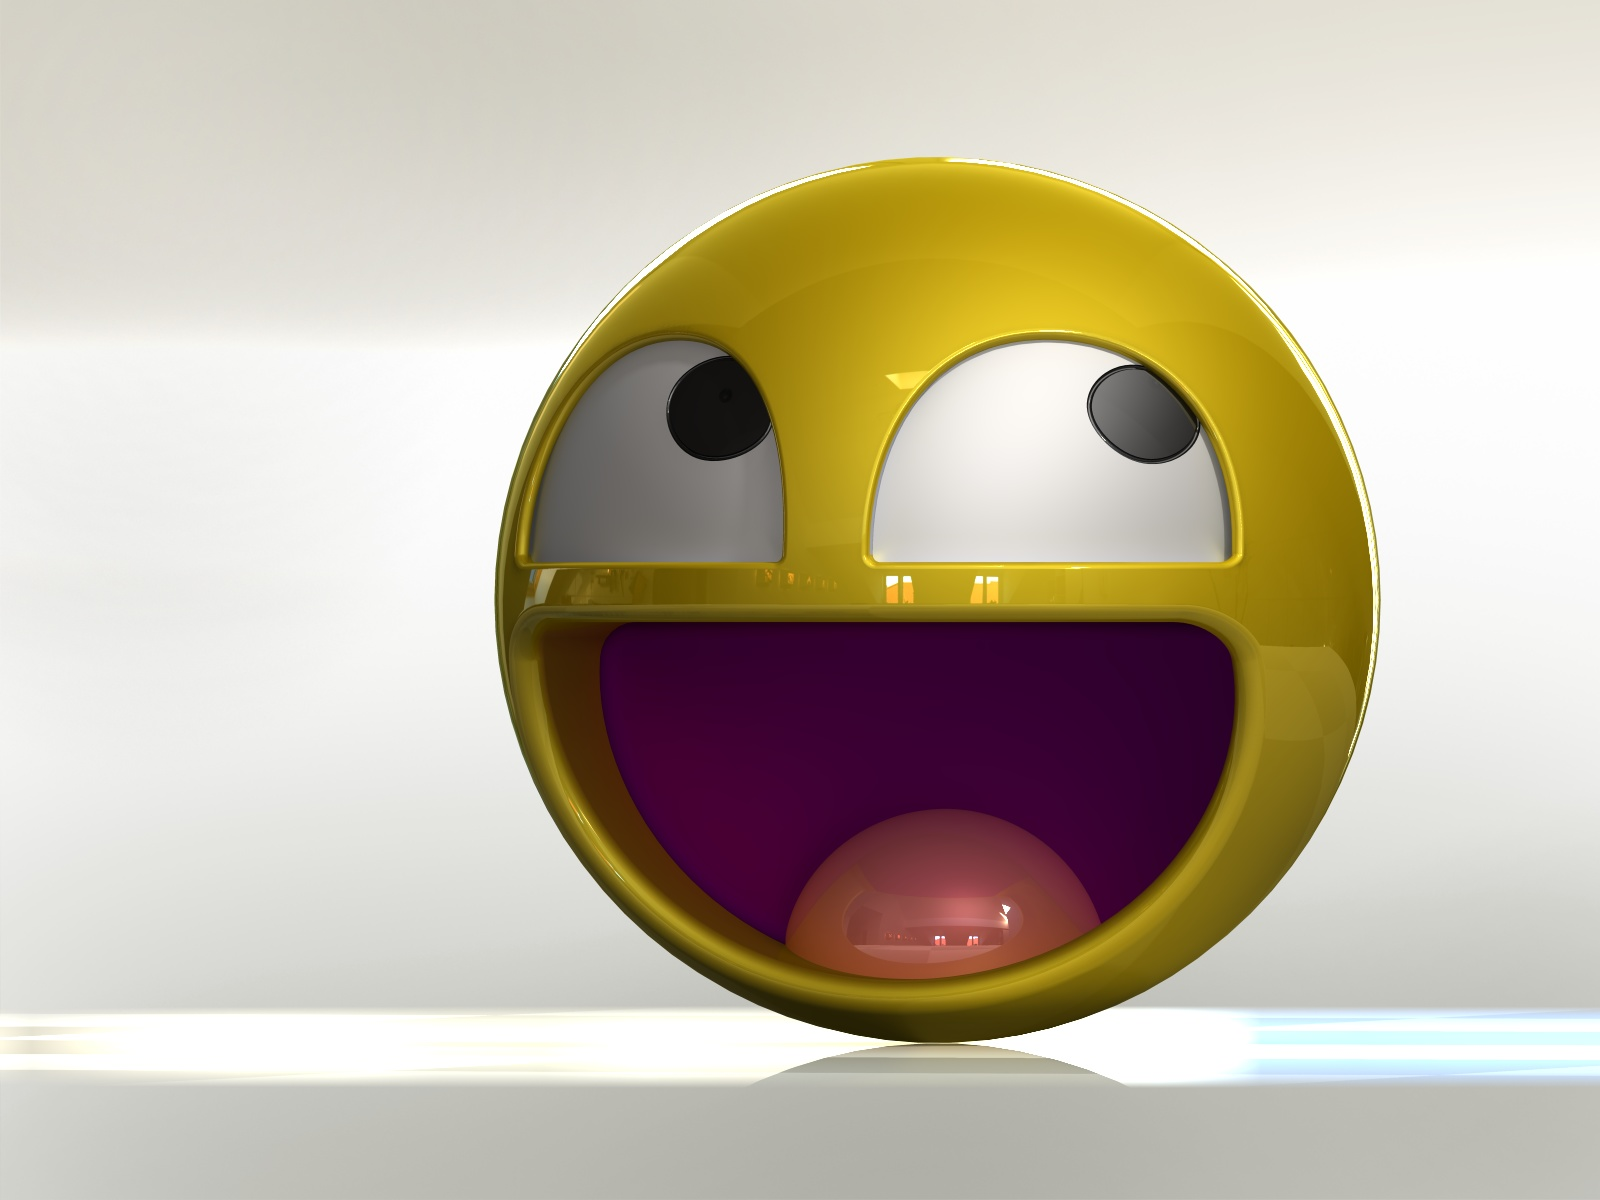 Cool Wallpapers Pics Cool Backgrounds Smiley Faces 1600x1200